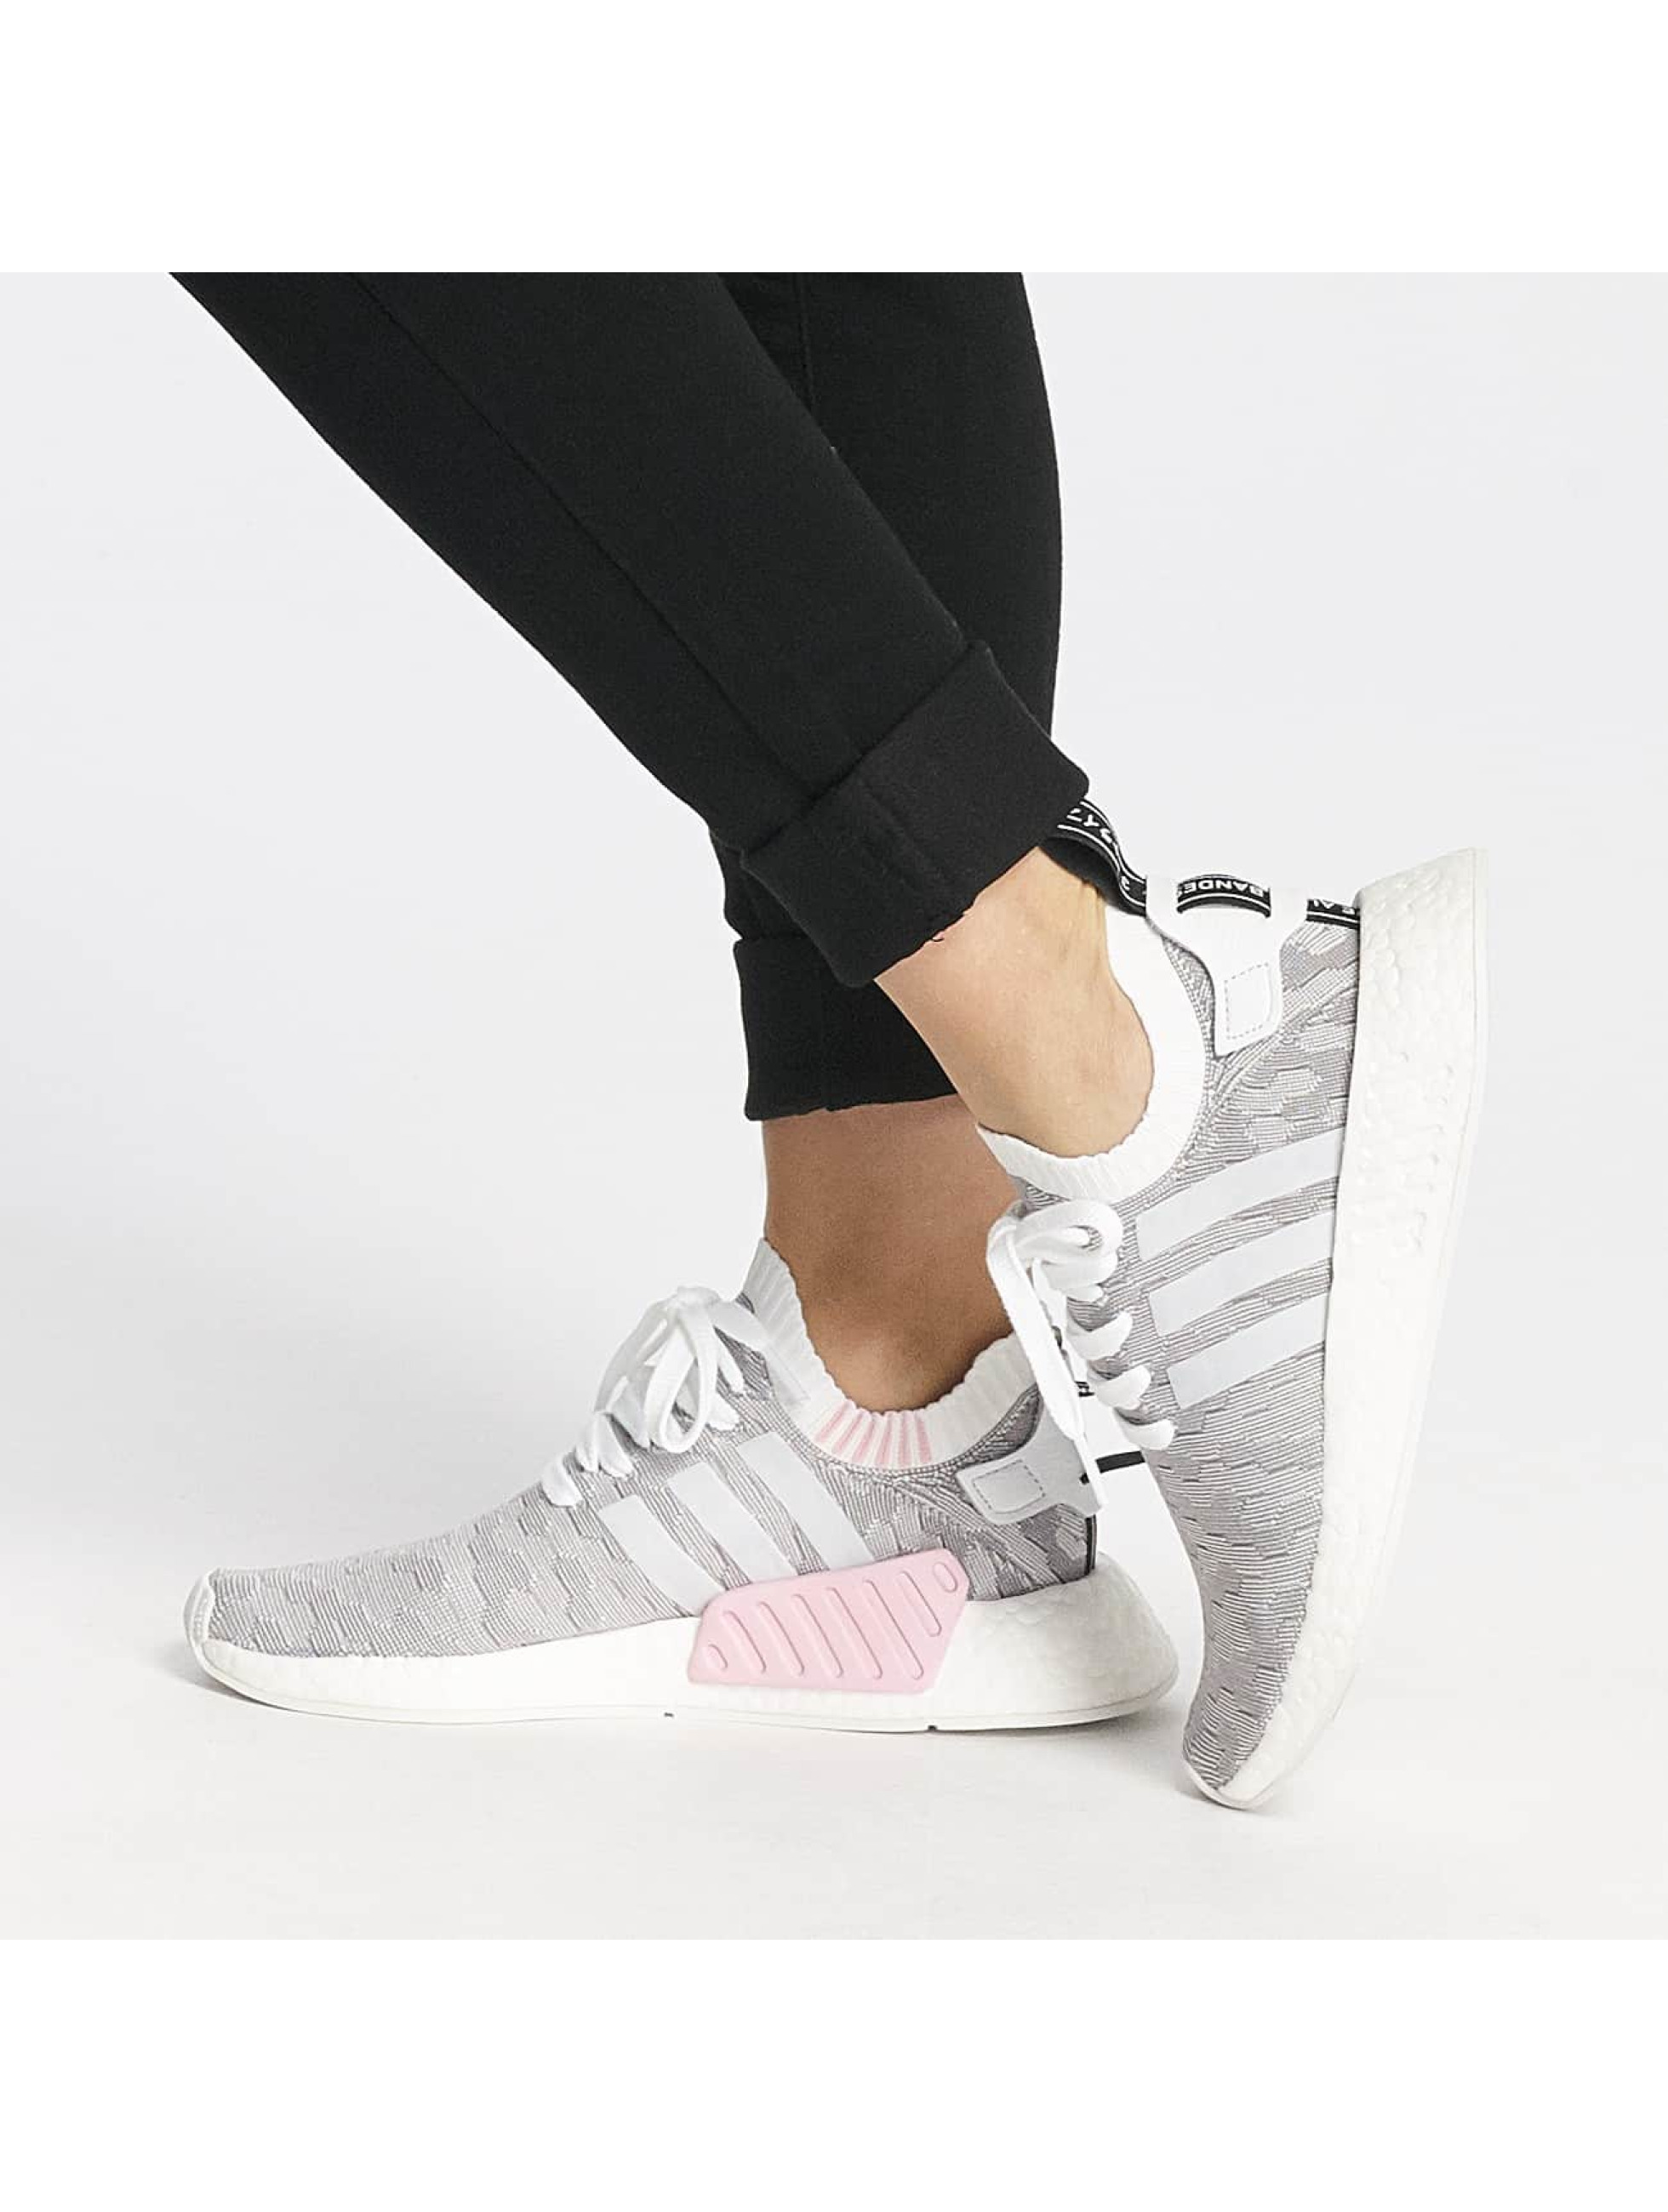 adidas Sneakers NMD_R2 PK W white